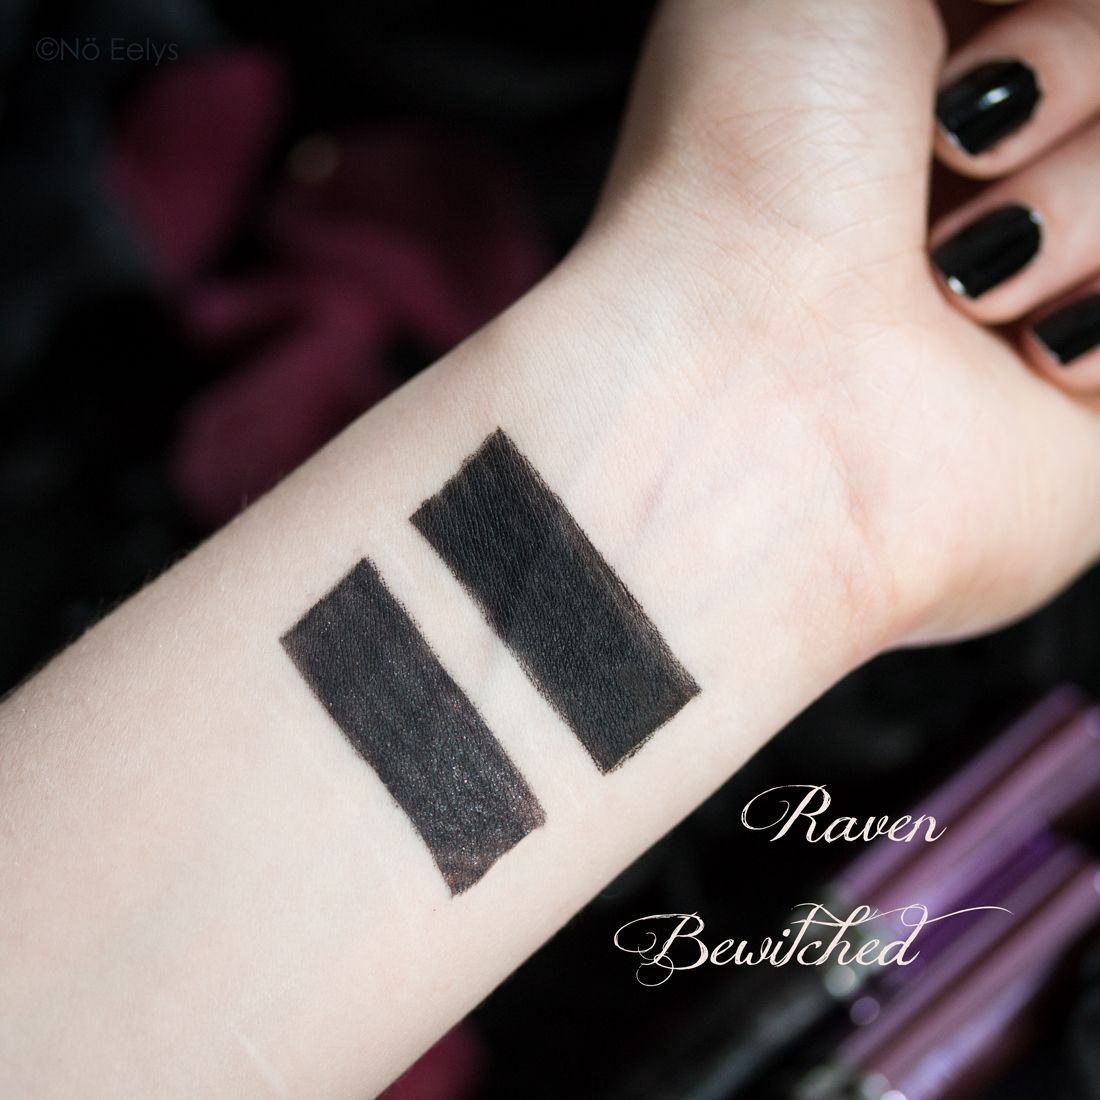 Swatches Baby Bat Beauty : swatch de Raven & Bewitched, deux rouges à lèvres noirs liquides